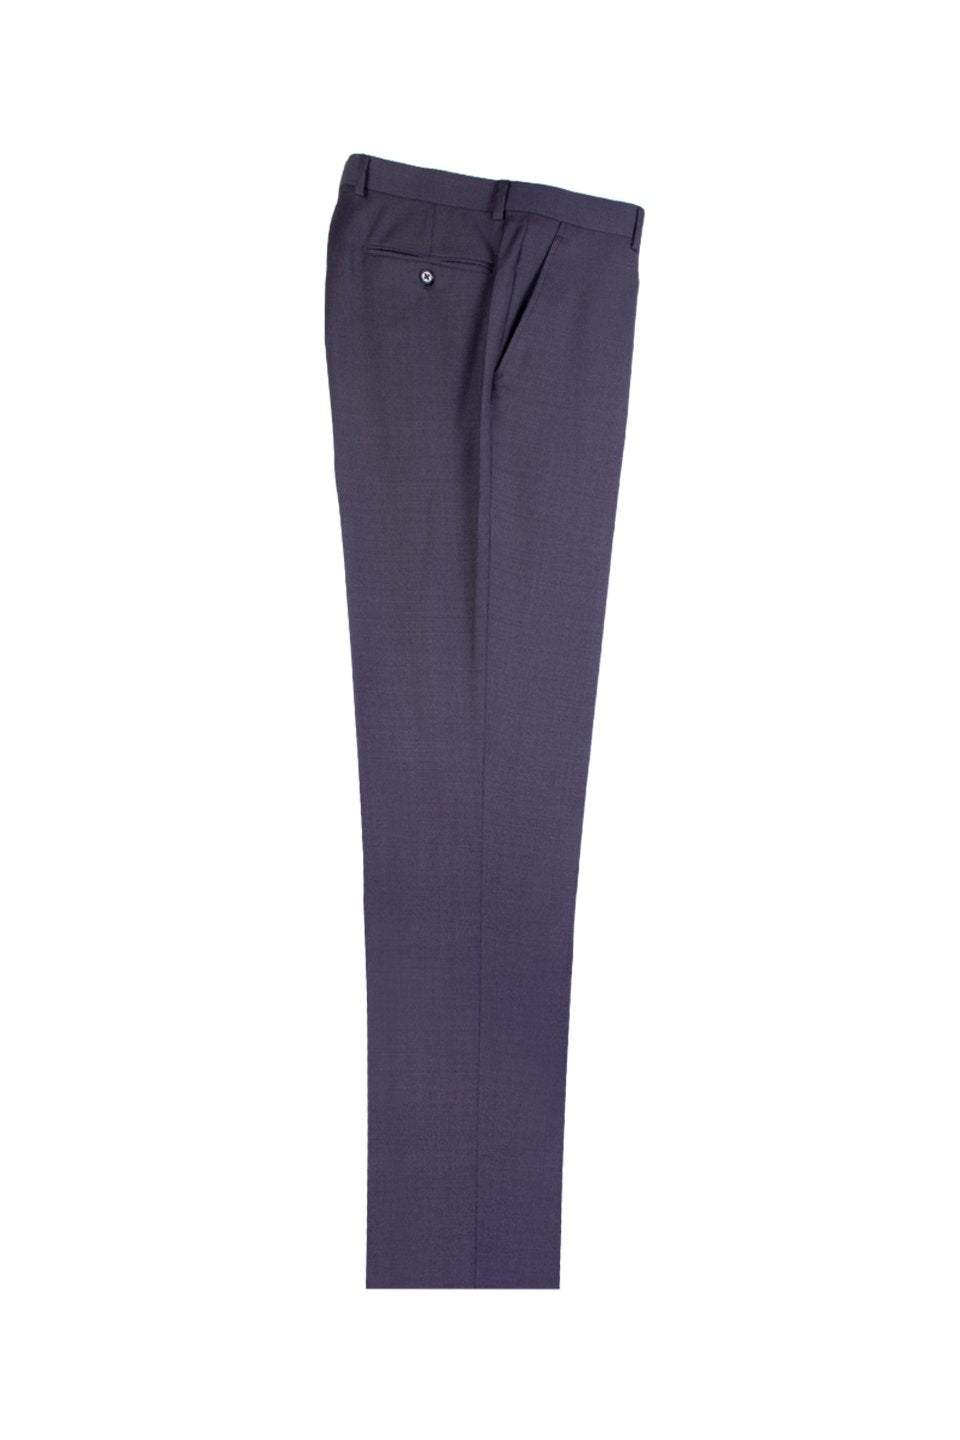 Tiglio Dark Grey Herringbone Flat Front Dress Pants